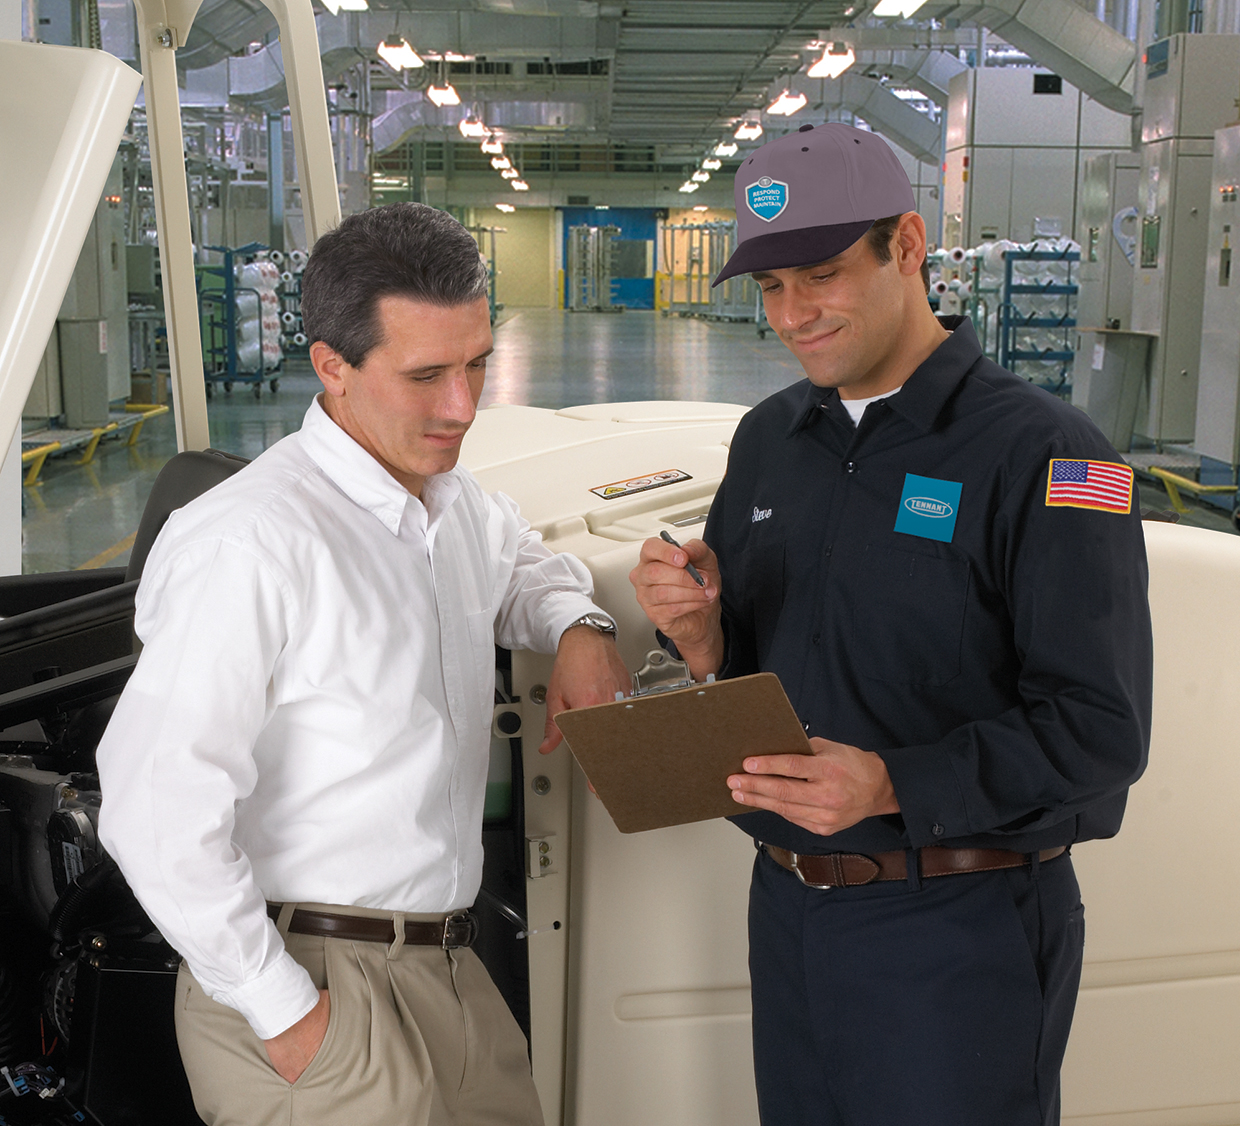 Service Technician and Customer viewing planned maintenance information